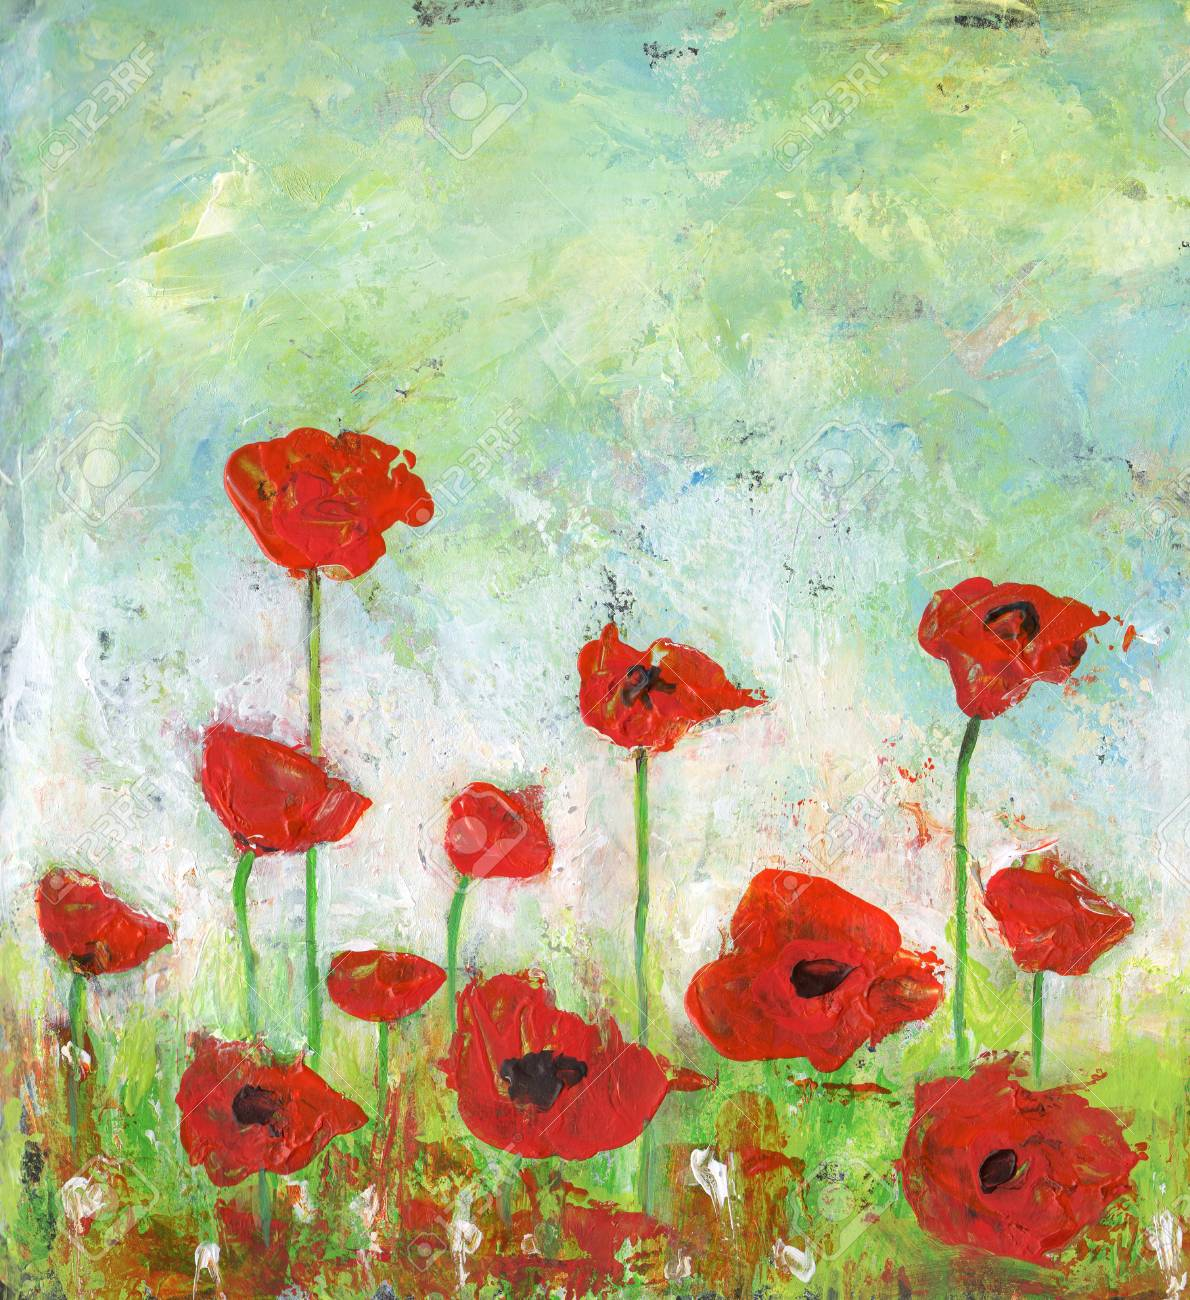 Acrylic Painting Of An Abstract Poppies Field Stock Photo Picture